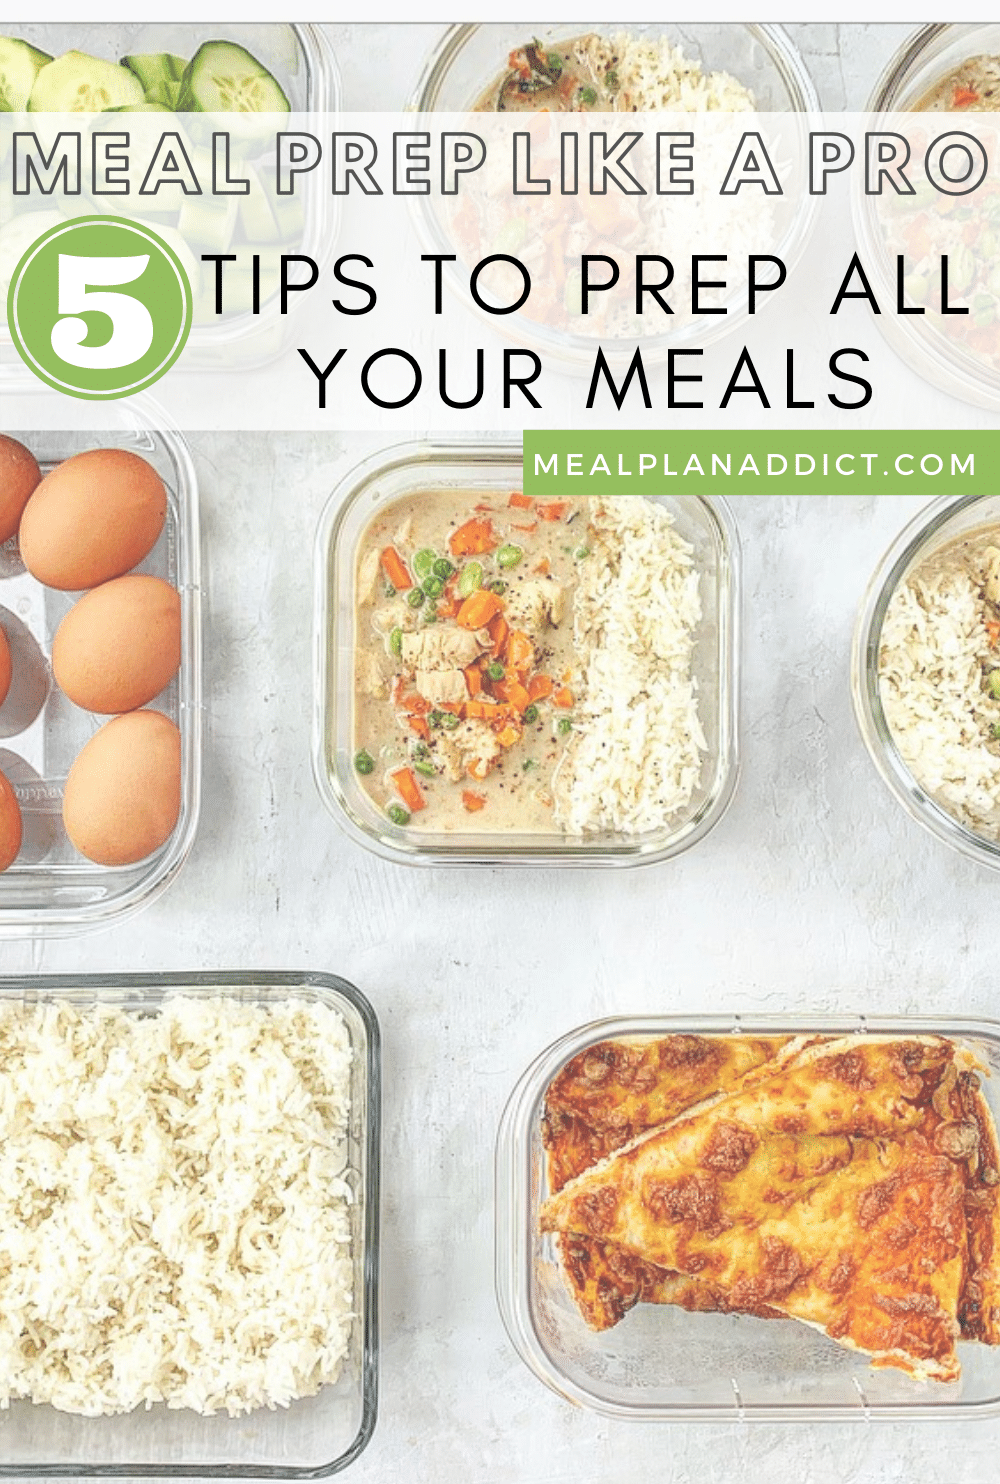 Meal Prep Like a Pro 5 Tips to Prep All Your Meals | Meal Plan Addict